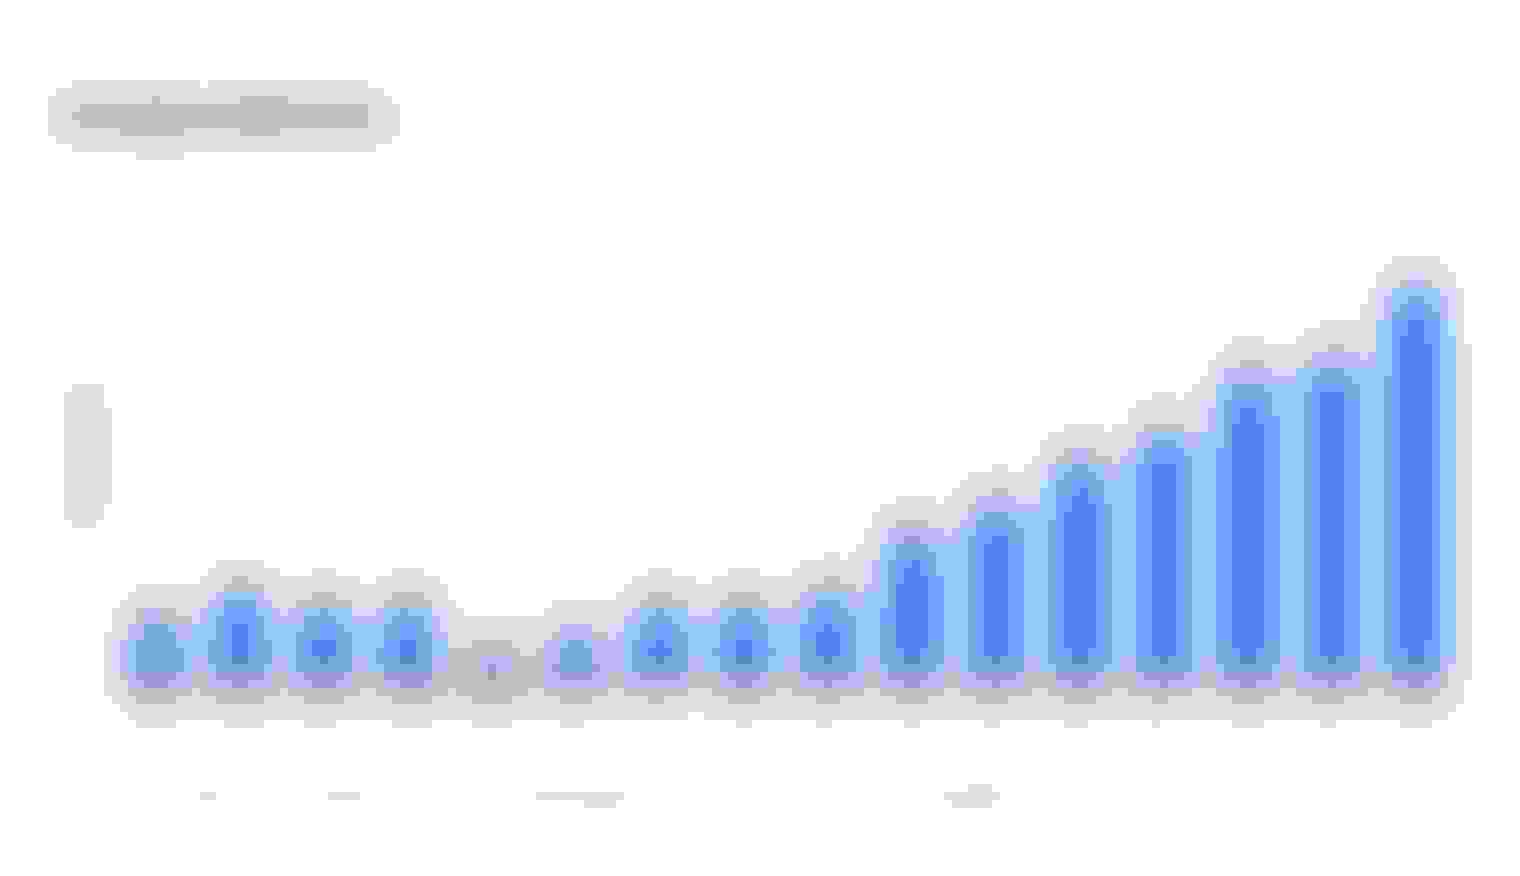 This is a graph of average credit scores